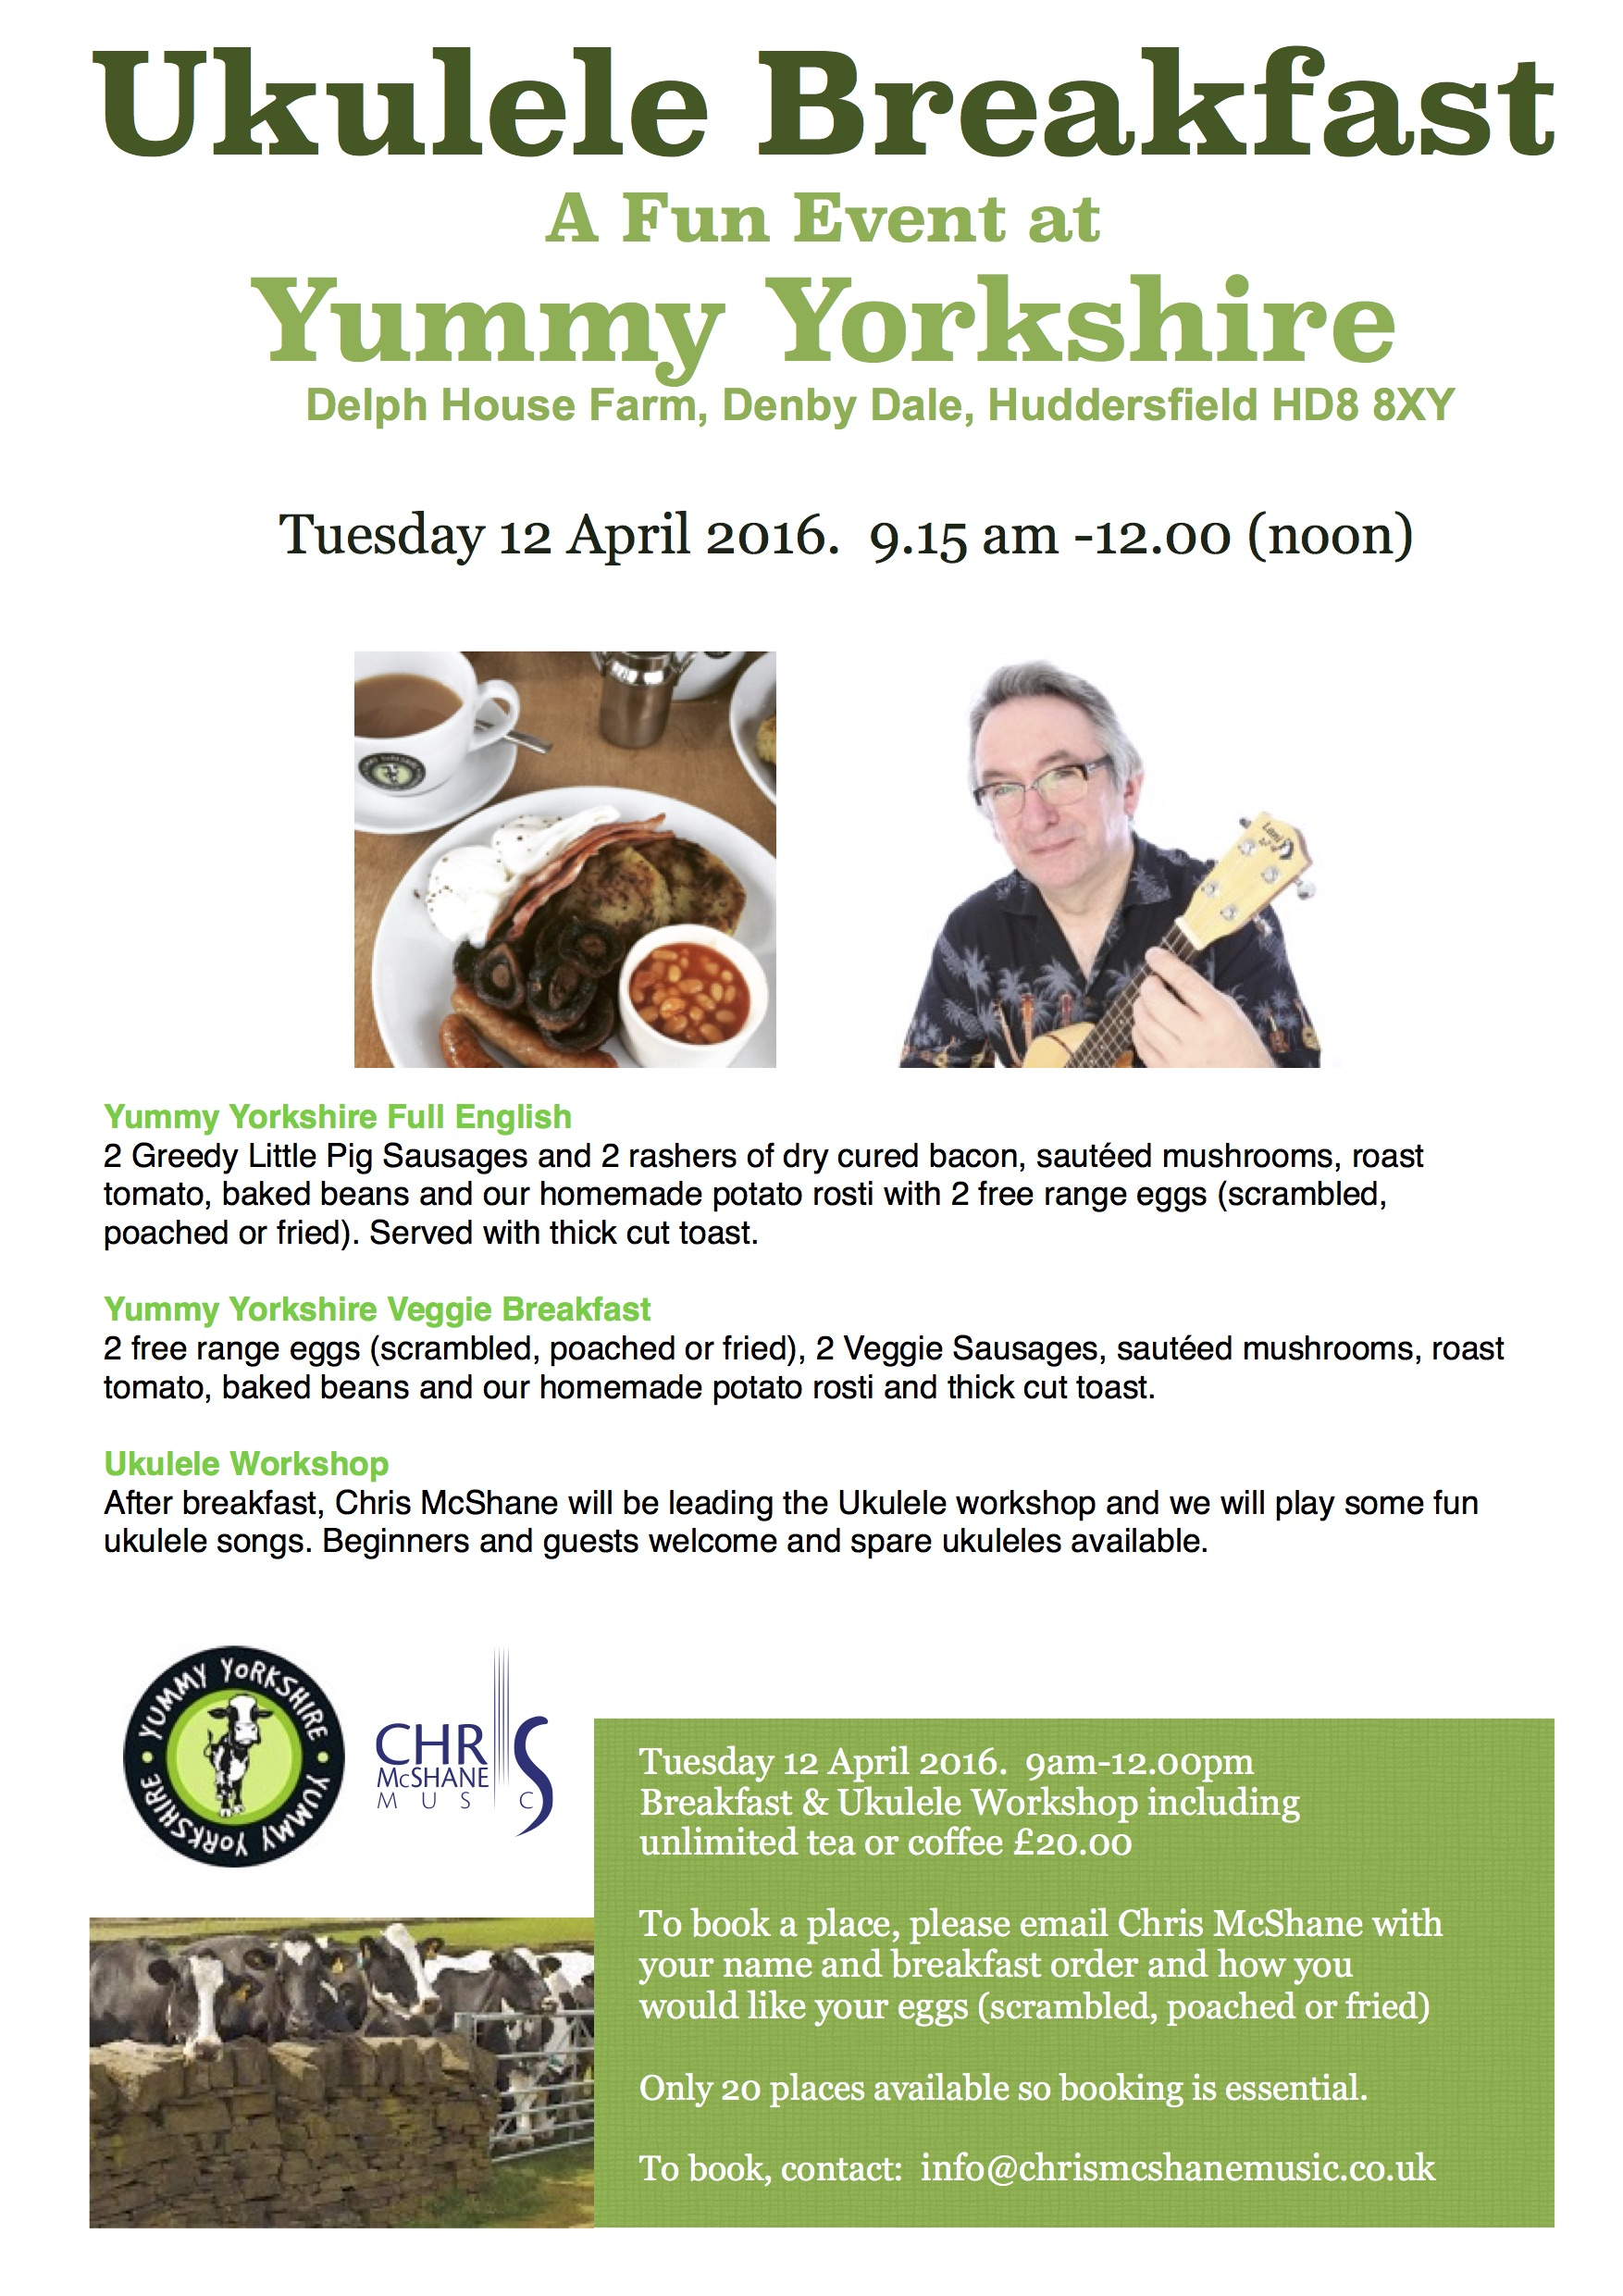 Ukulele Breakfast at Yummy Yorkshire. Tuesday 12 April